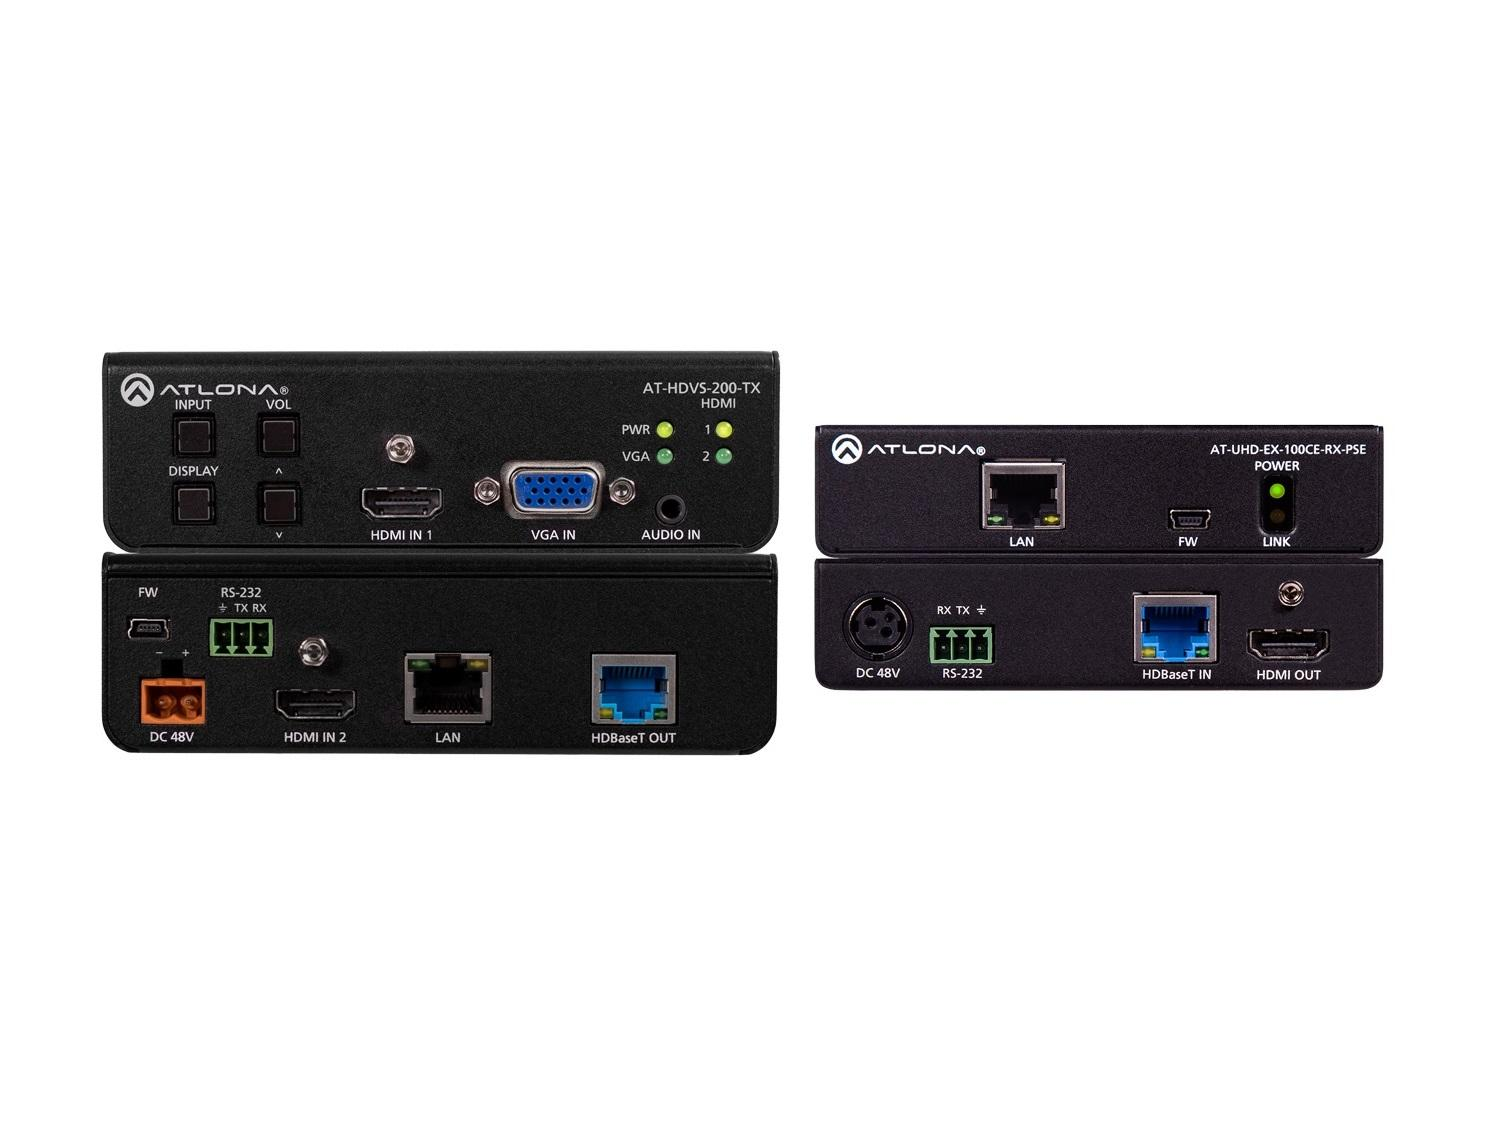 4K-HDVS-EXT 4K/UHD HDBaseT PoE Extender (Transmitter/Receiver) Kit with Switcher by Atlona